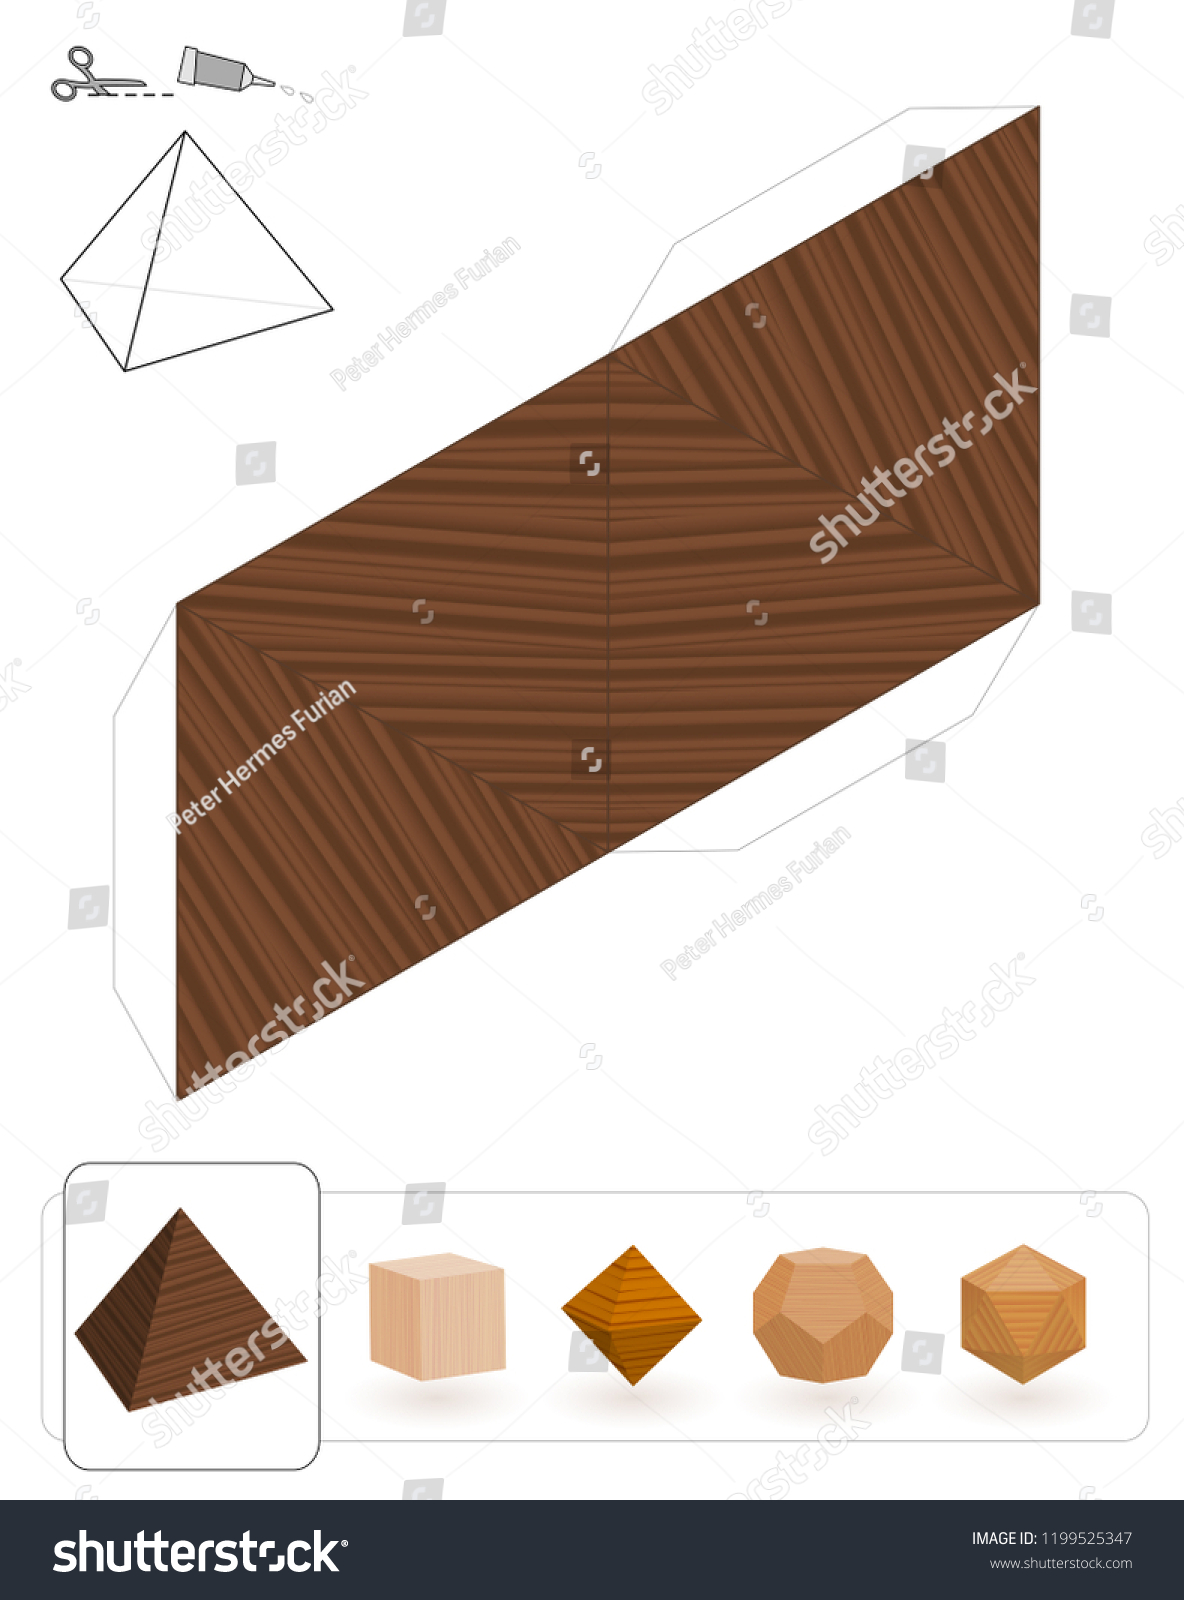 Platonic Solids Template Tetrahedron Wooden Texture Stock Vector